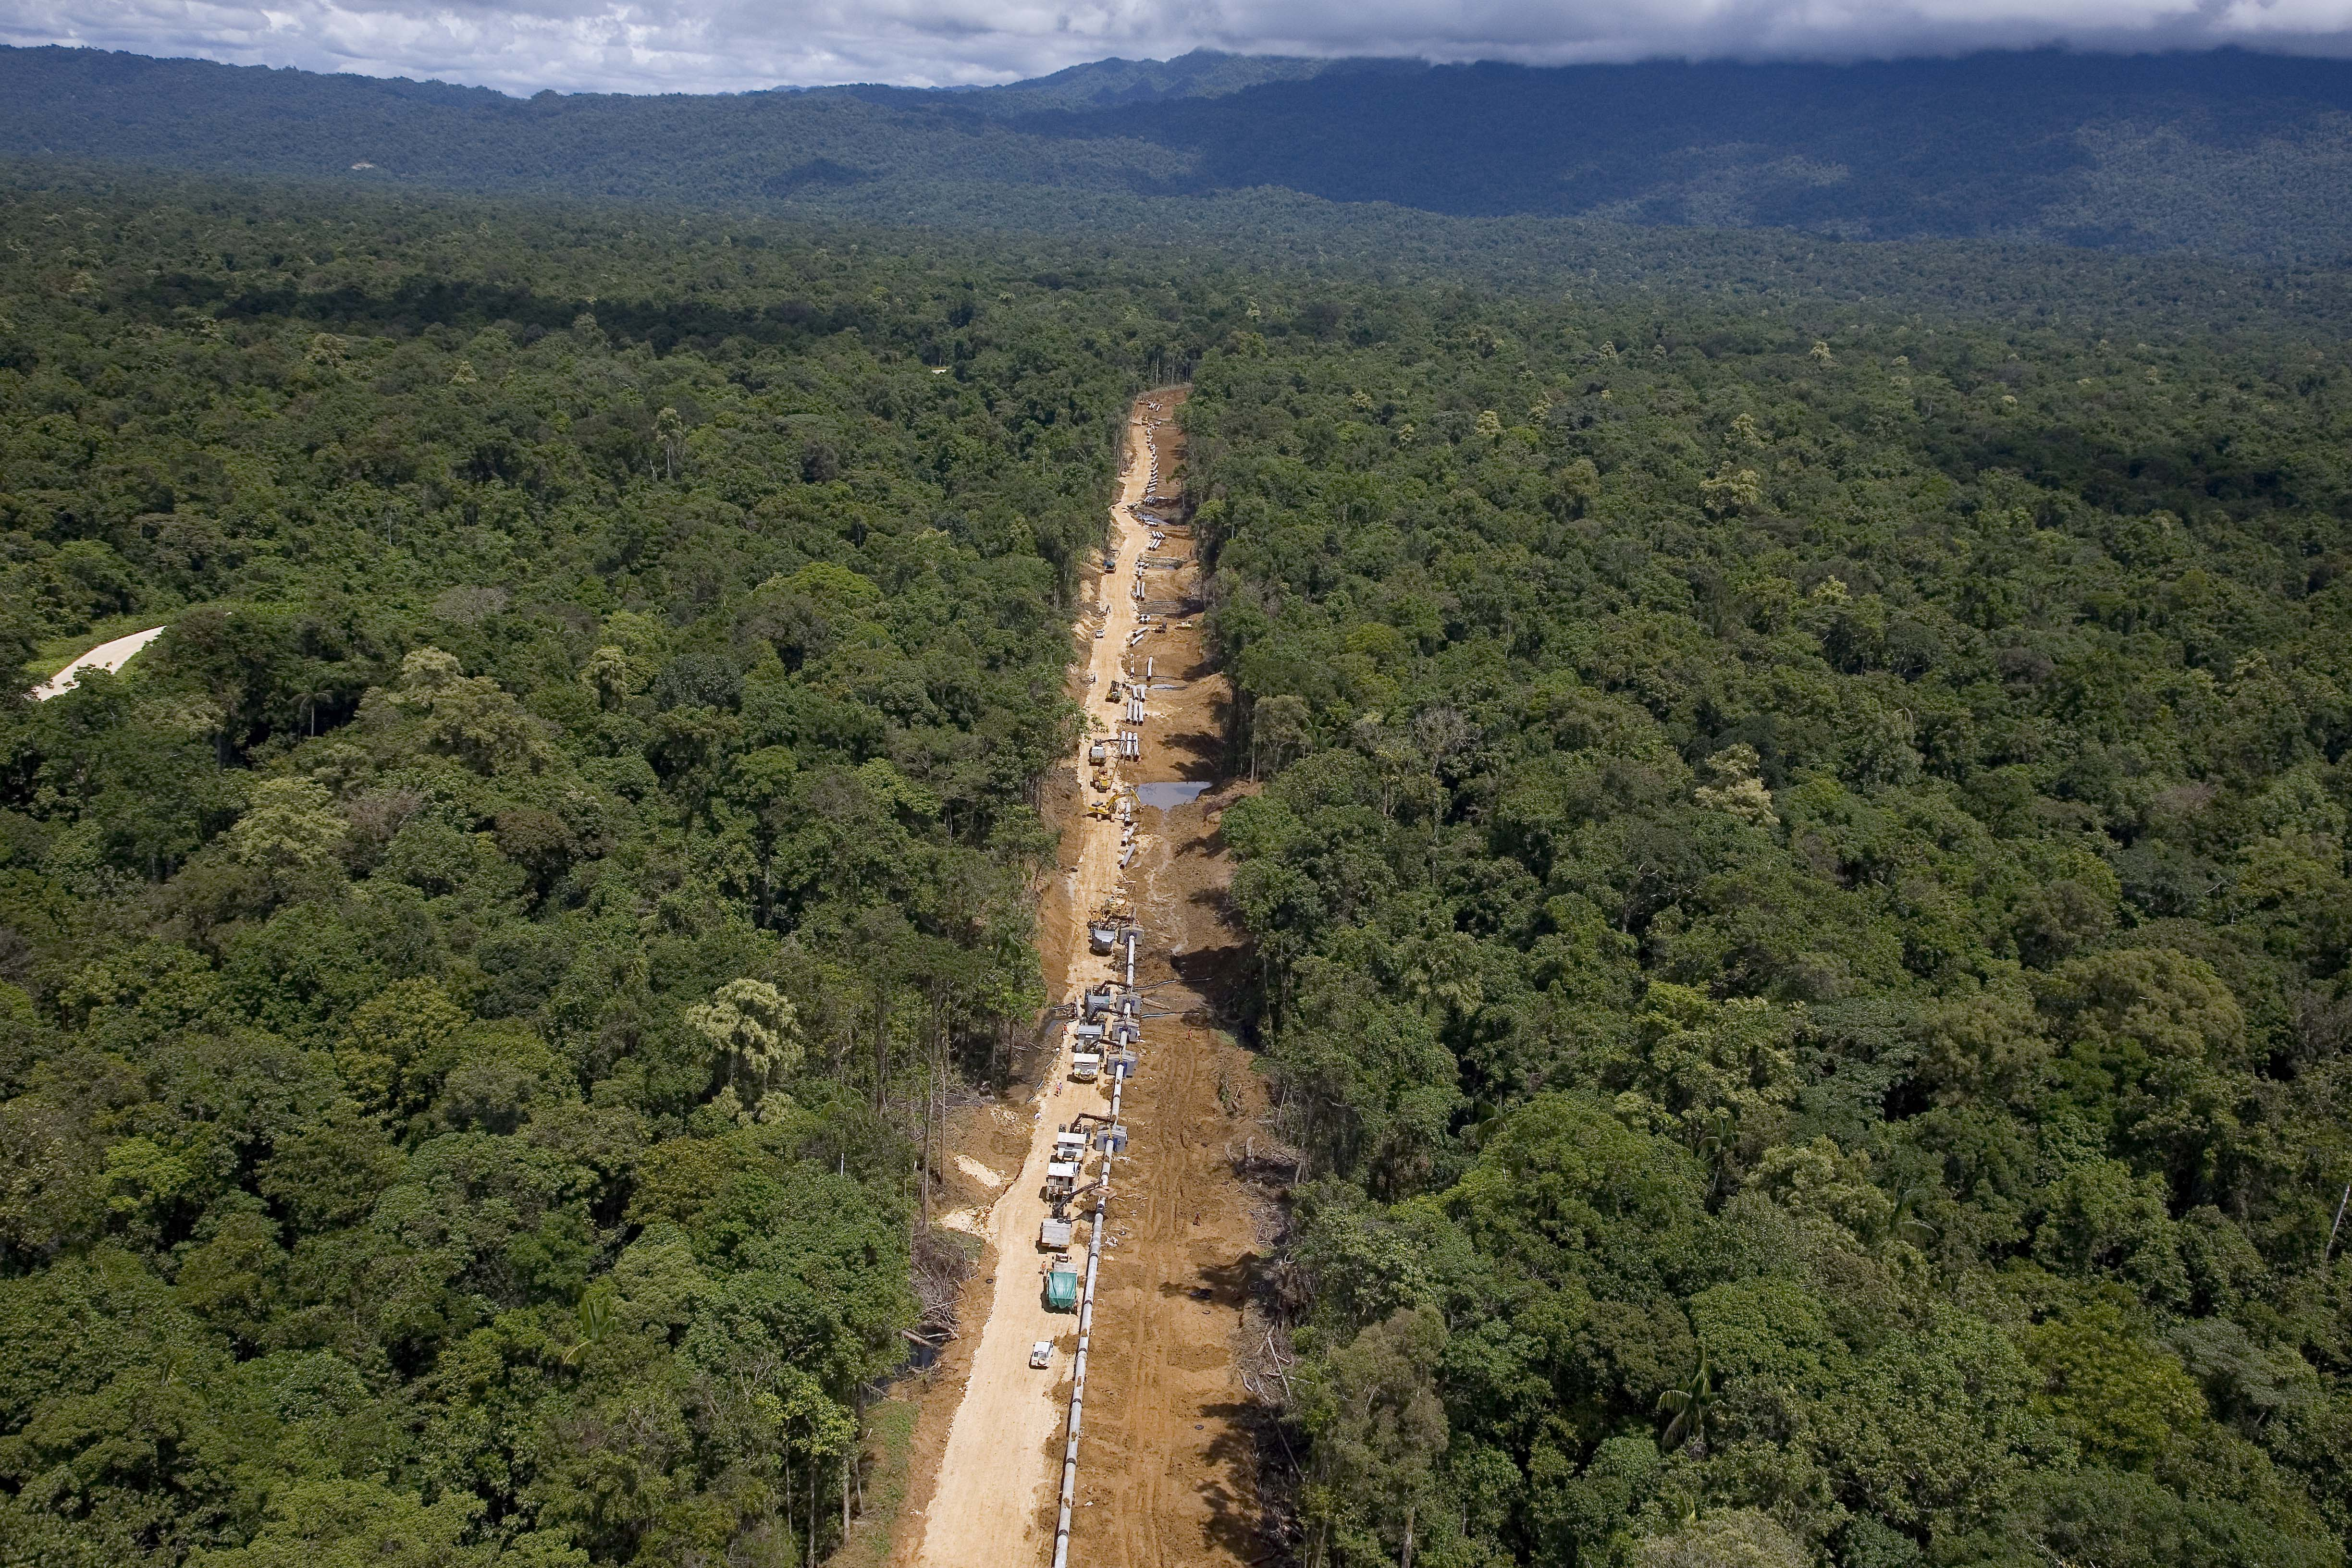 Aerial photos of EPC5A Onshore Pipeline and associated activities and landmarks at ExxonMobil's LNG project in Papua New Guinea, December 2011